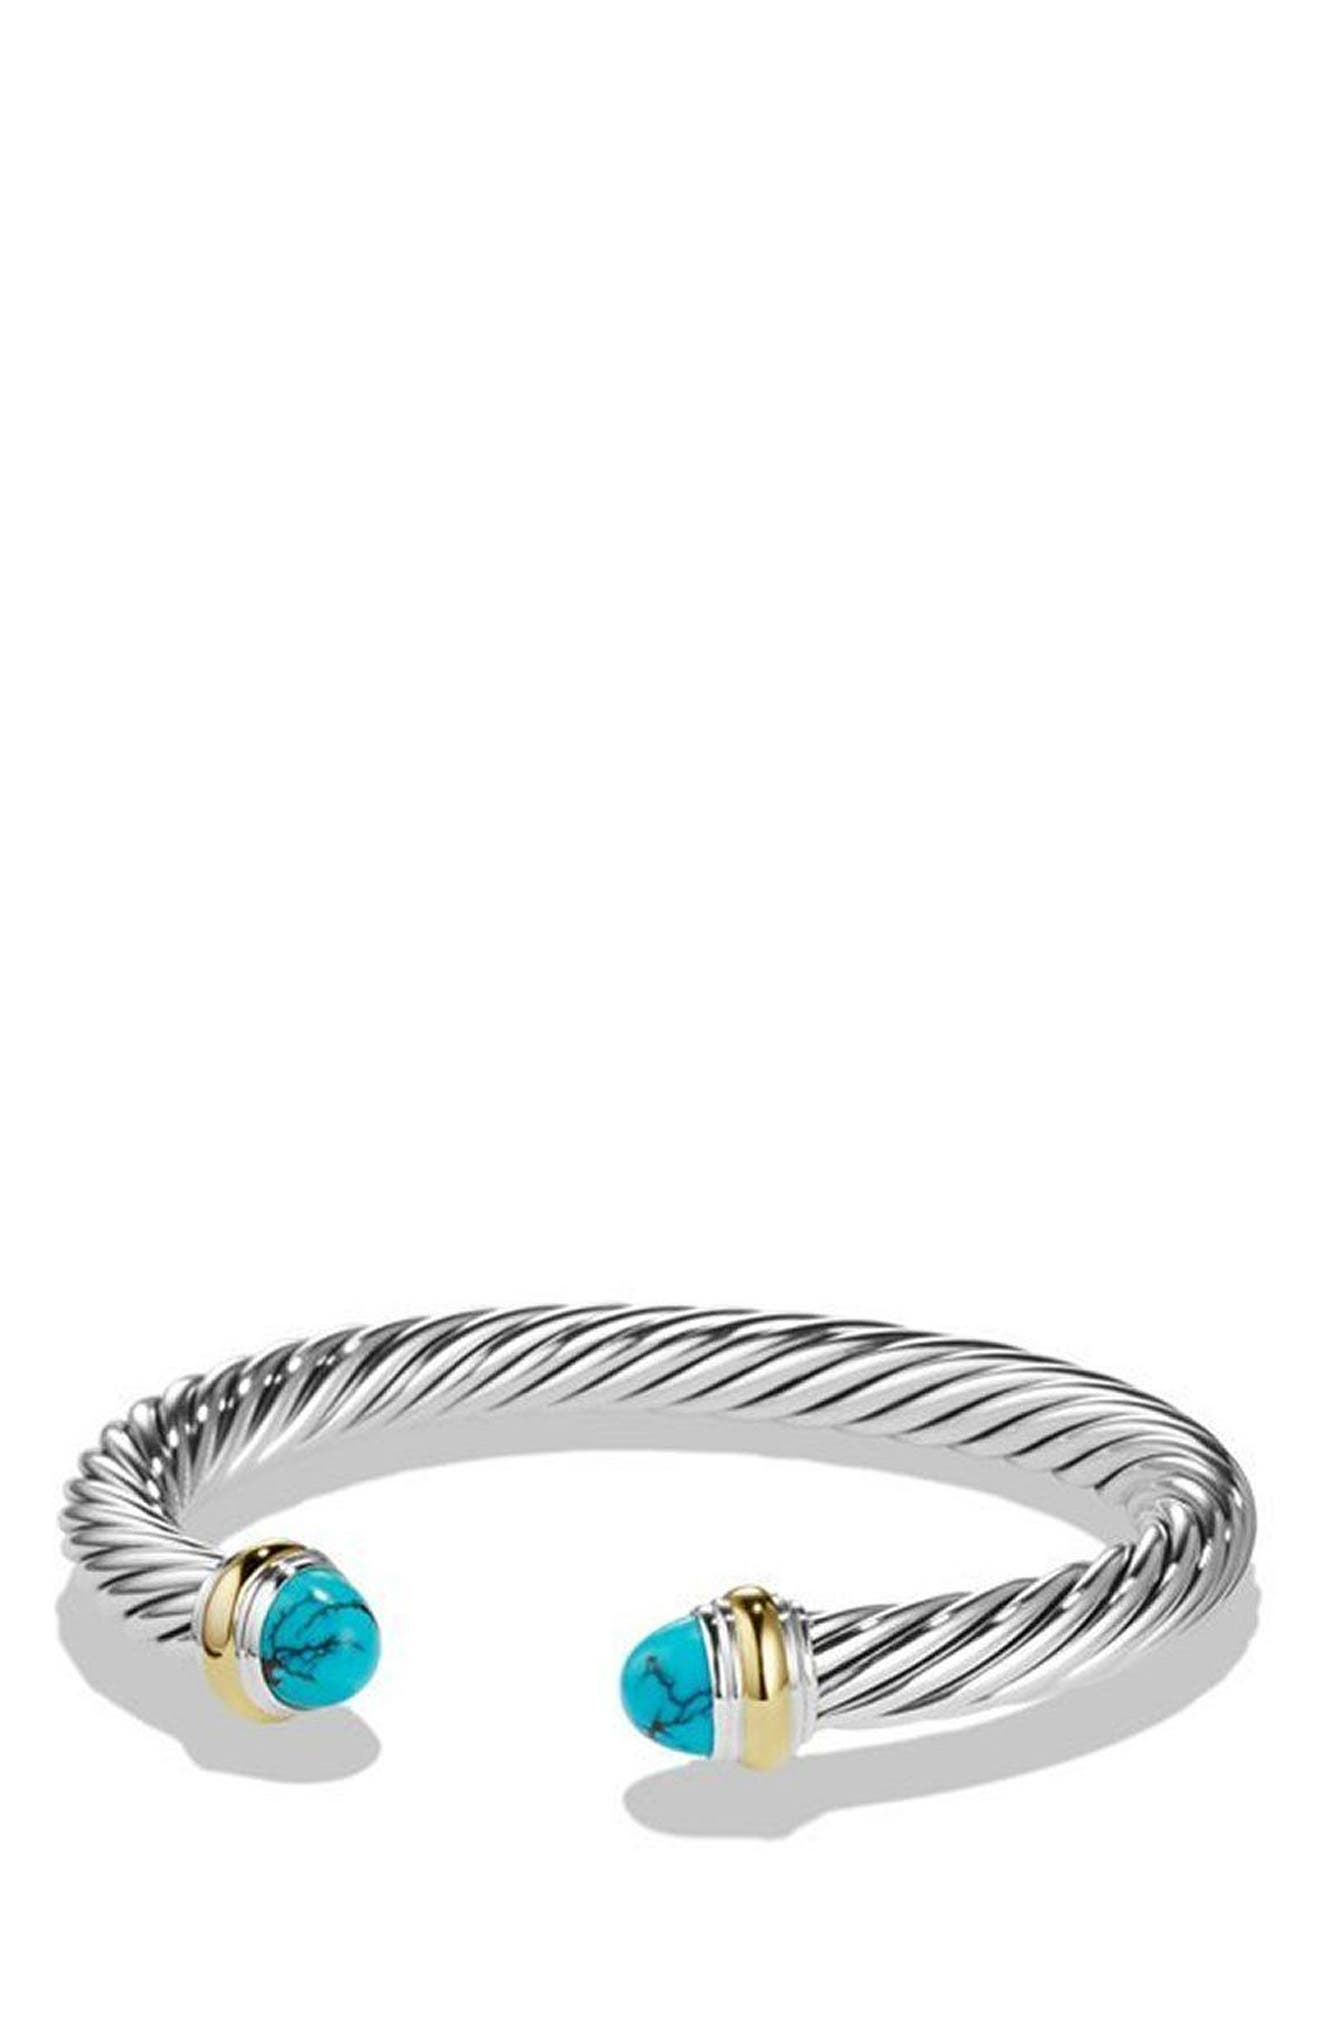 Cable Classic Bracelet with Turquoise and 14K Gold, 5mm,                             Main thumbnail 1, color,                             SILVER/ YELLOW GOLD/ TURQUOISE